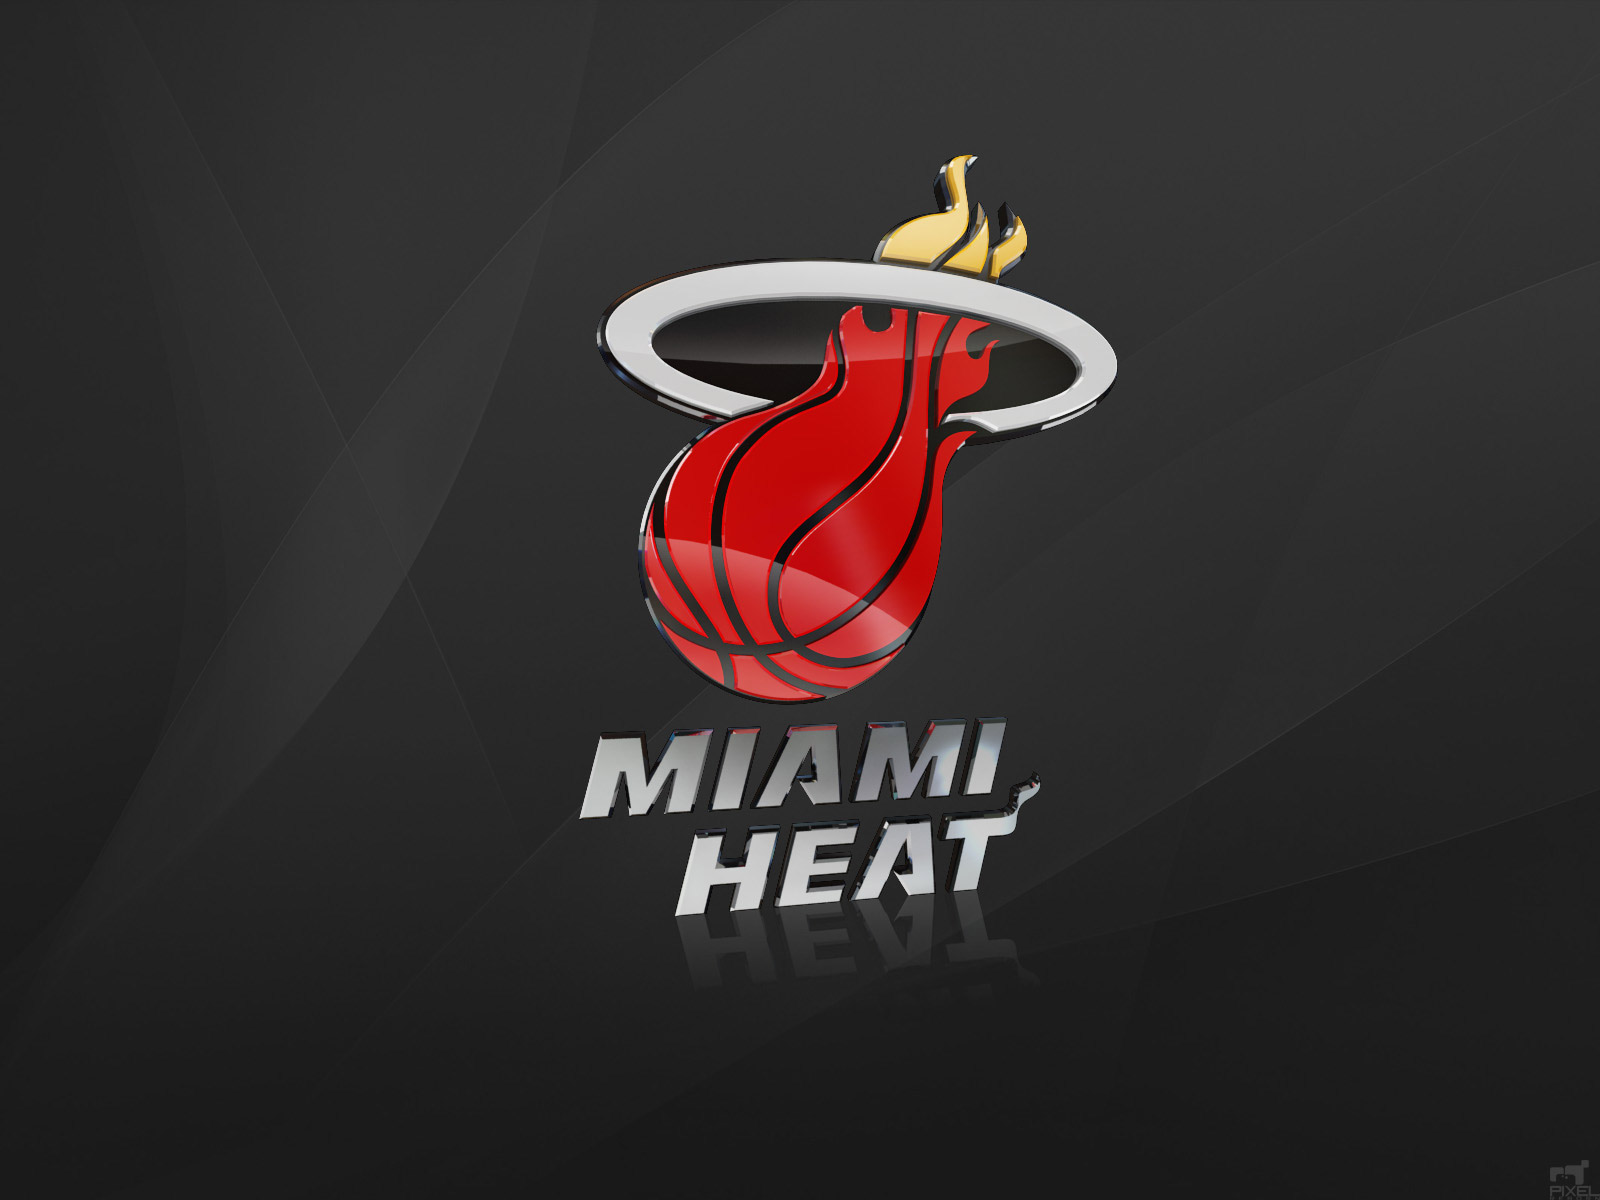 Miami Heat Wallpaper and Background Image | 1600x1200 | ID:263428 - Wallpaper Abyss